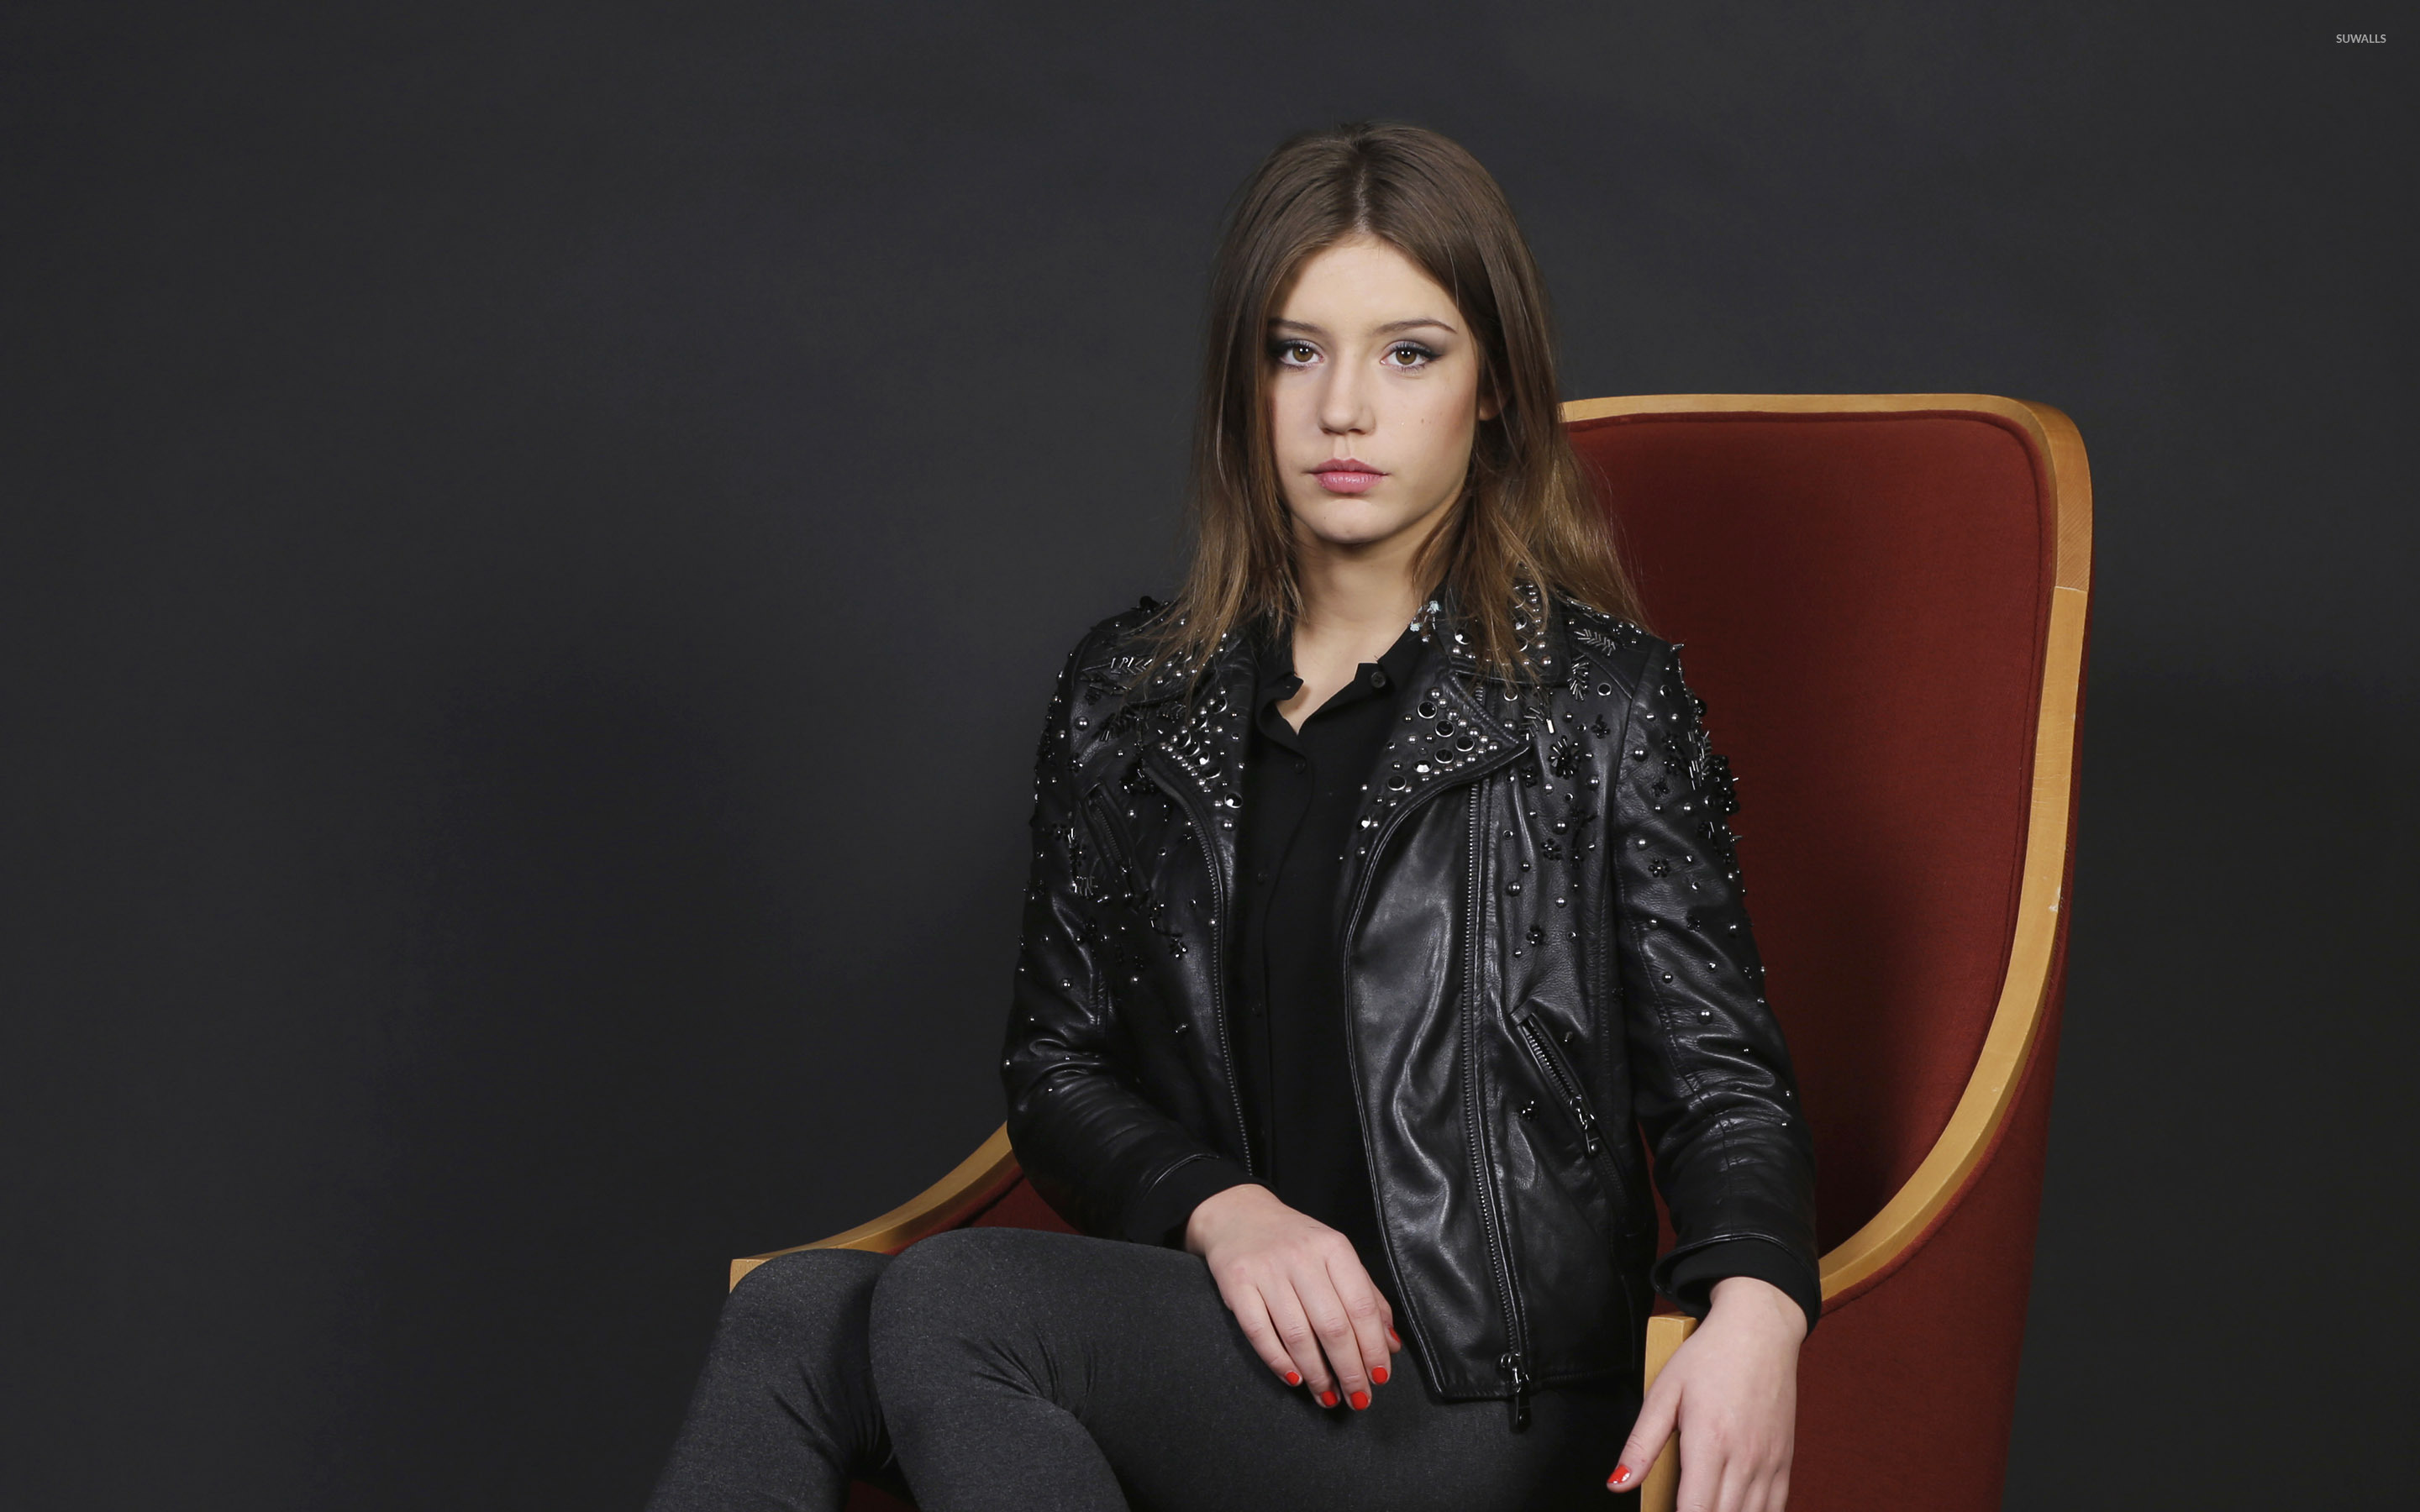 2880x1800 - Adele Exarchopoulos Wallpapers 7